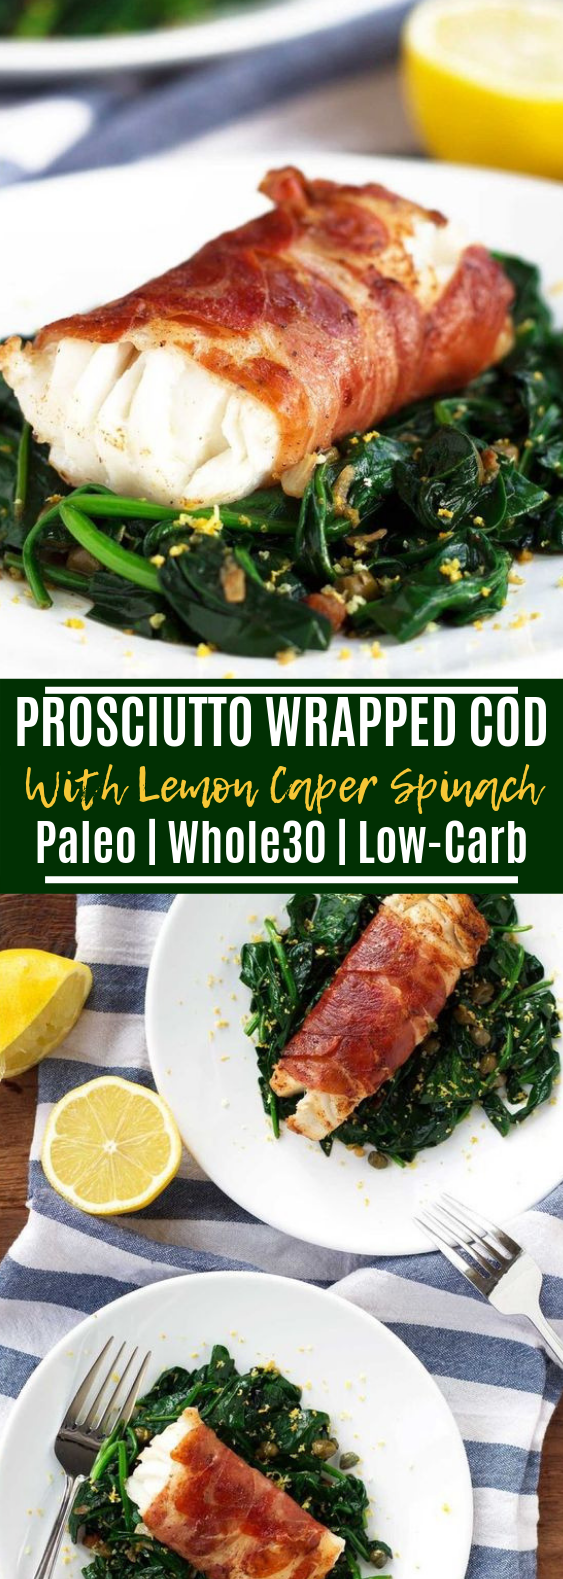 PROSCIUTTO-WRAPPED COD WITH LEMON CAPER SPINACH #healthy #keto